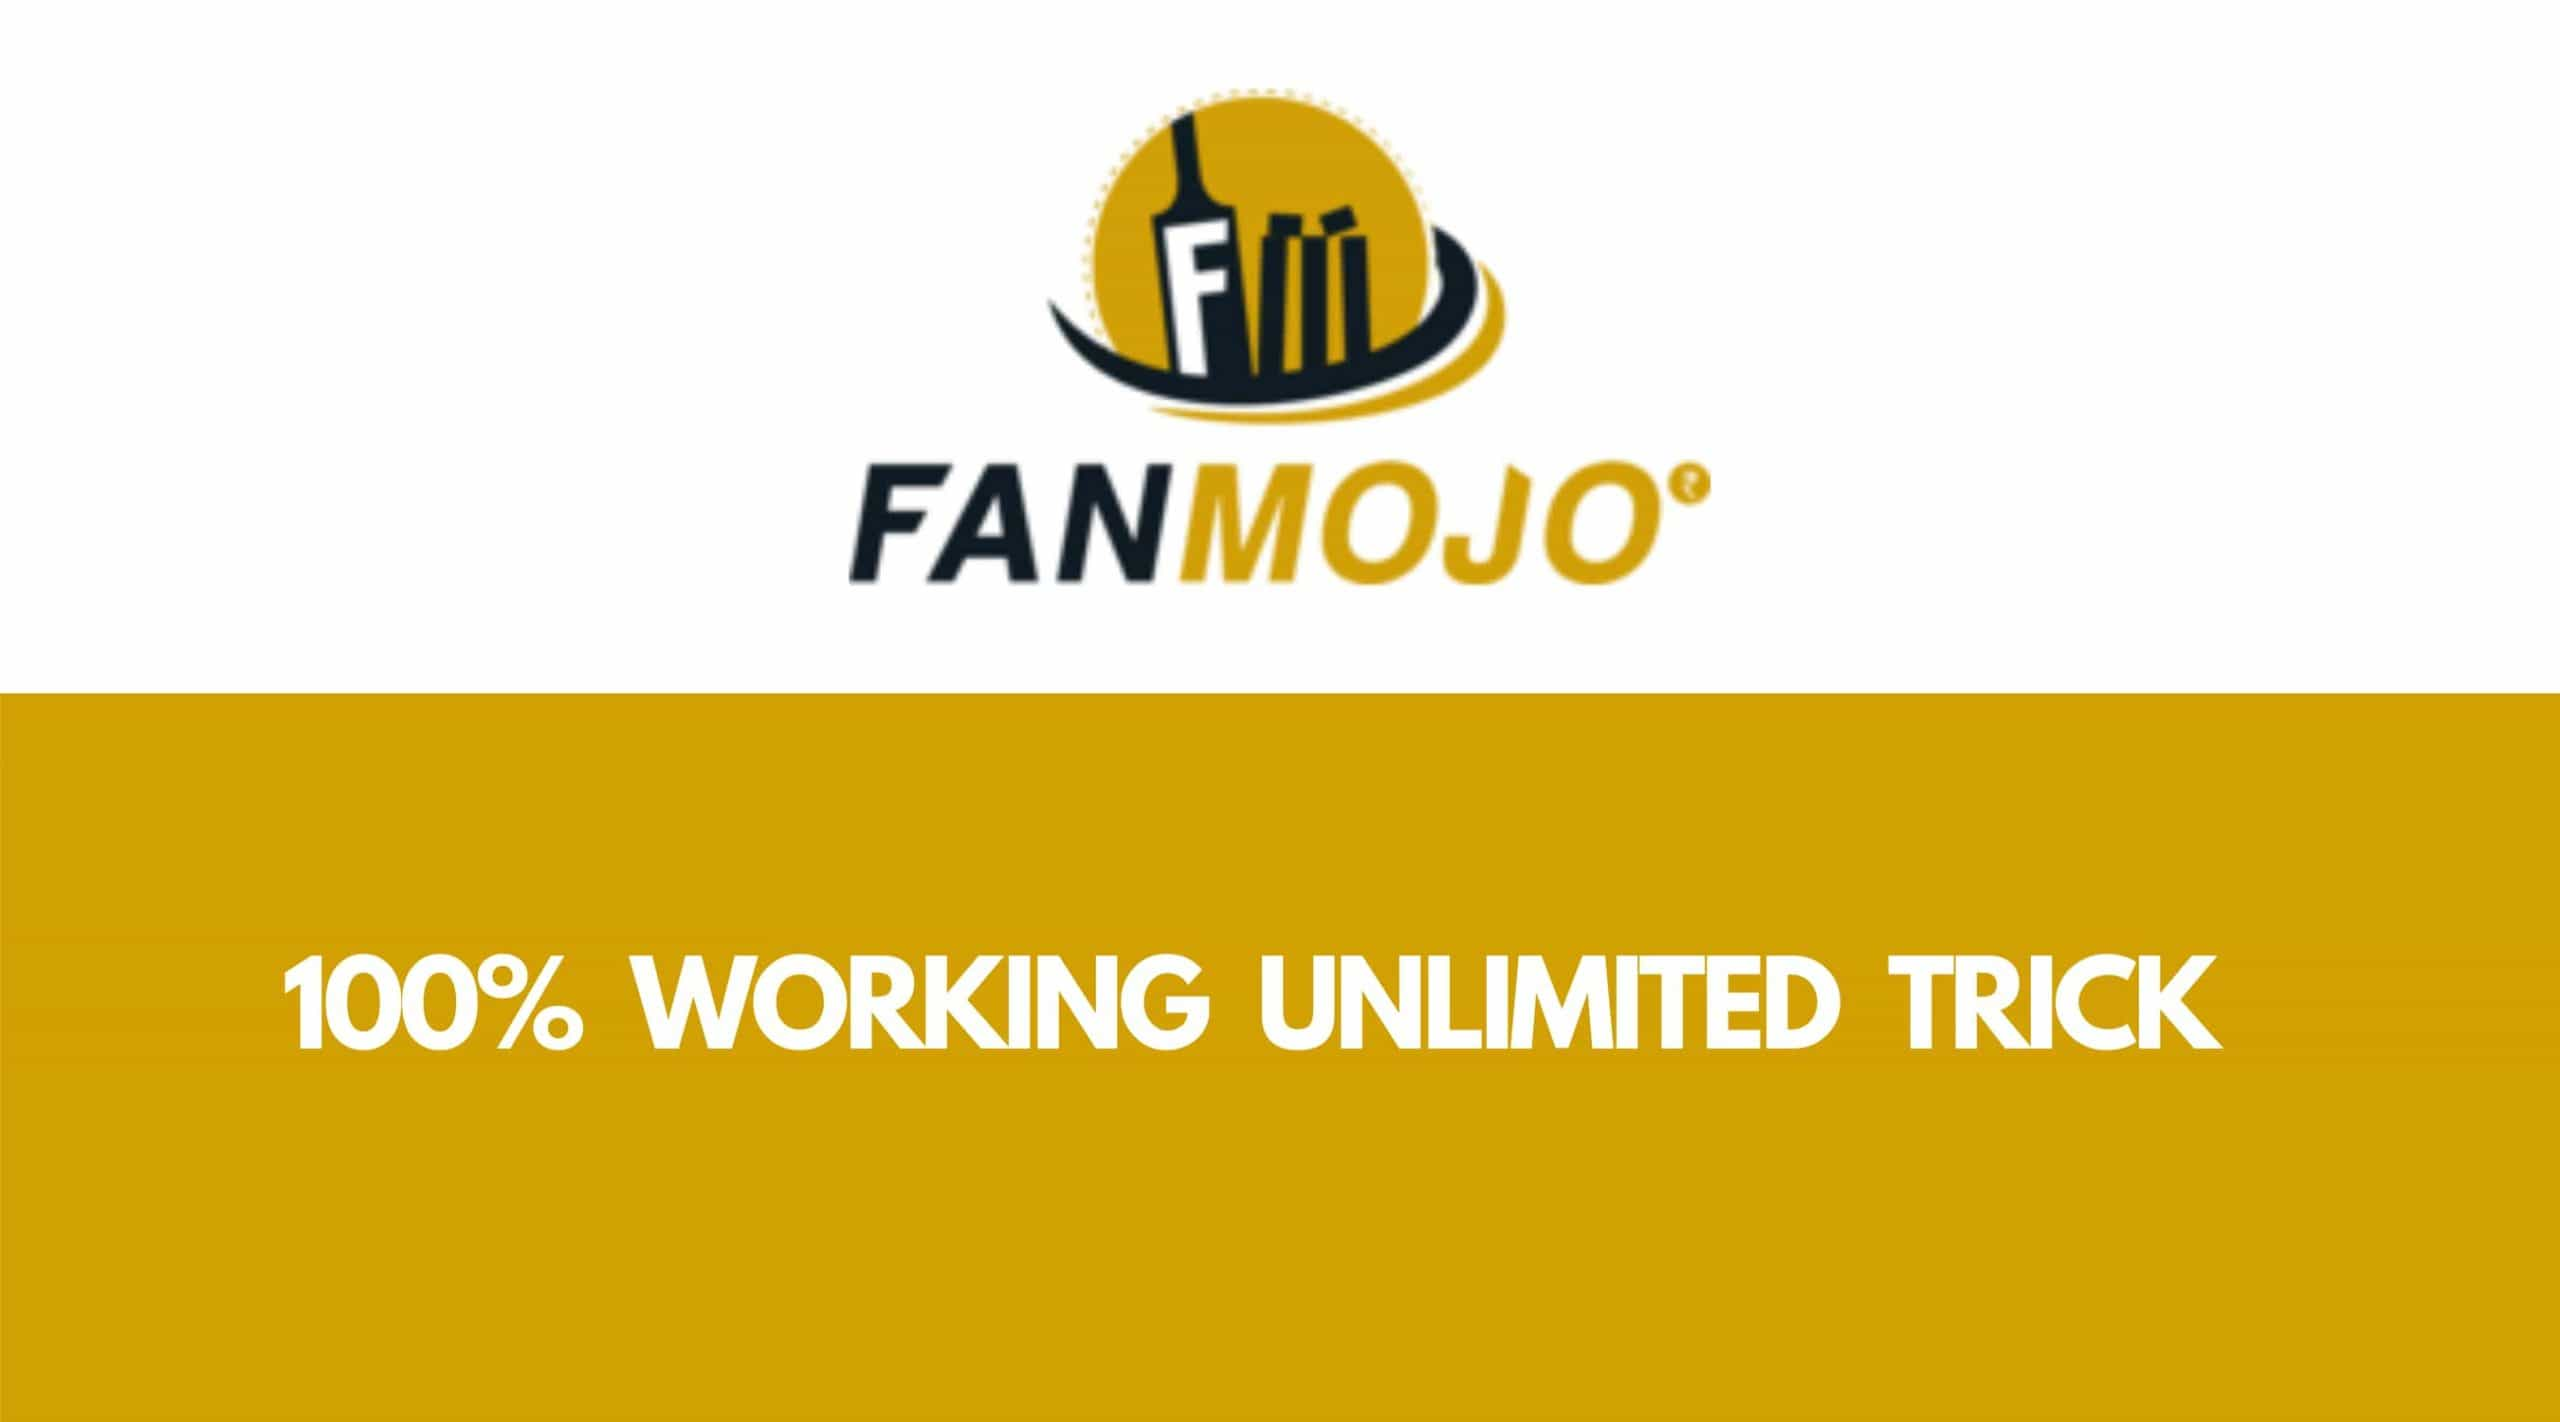 (₹1000) FANMOJO LOOT ONE DEVICE UNLIMITED TRICK